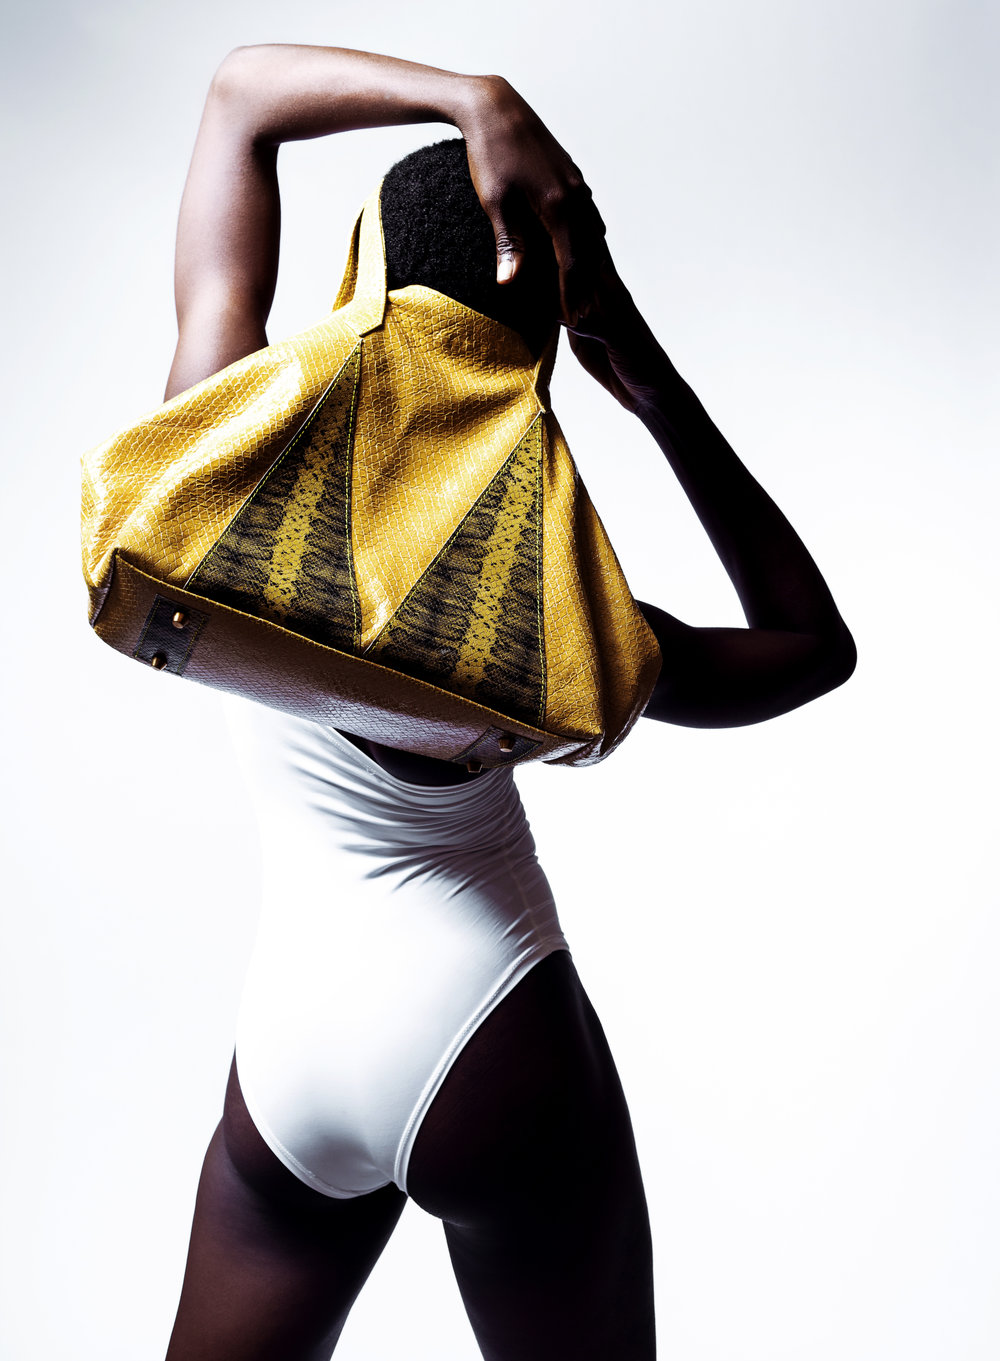 BIG, BOLD AND THE BEAUTIFUL - Getting inspiration from the brand signature logo, the collection expresses its various forms from getting you organized to going with the flow in the tote.